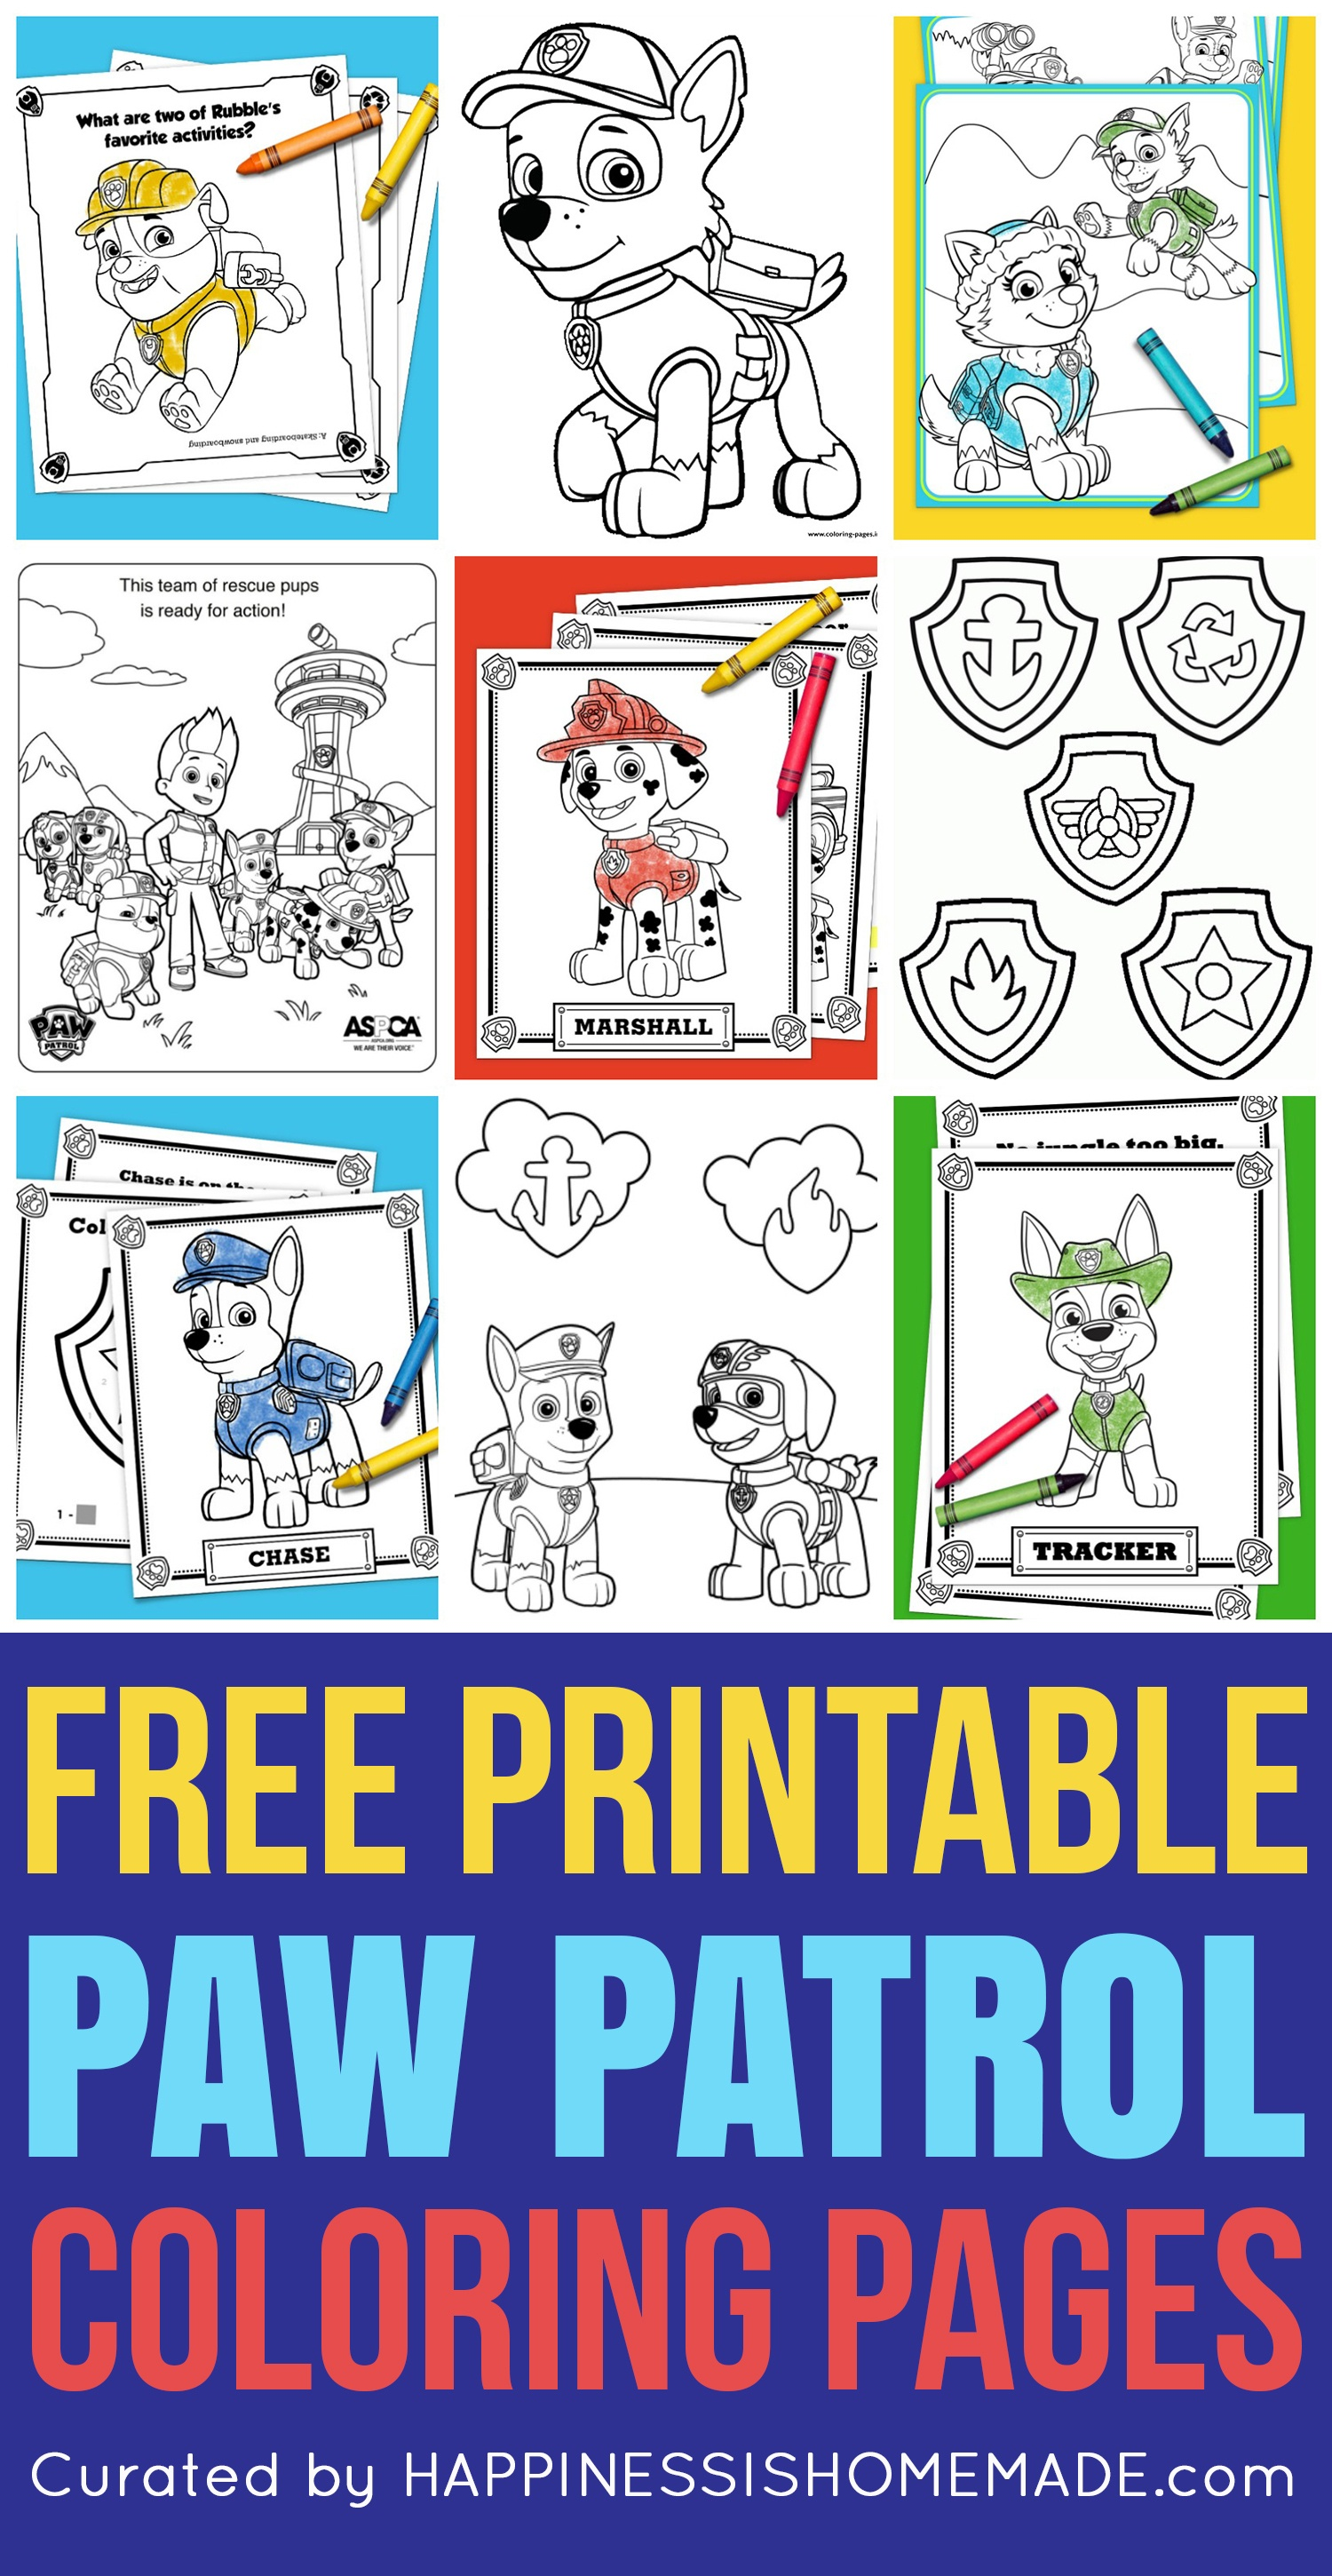 Free Paw Patrol Coloring Pages - Happiness Is Homemade - Free Paw Patrol Birthday Printables